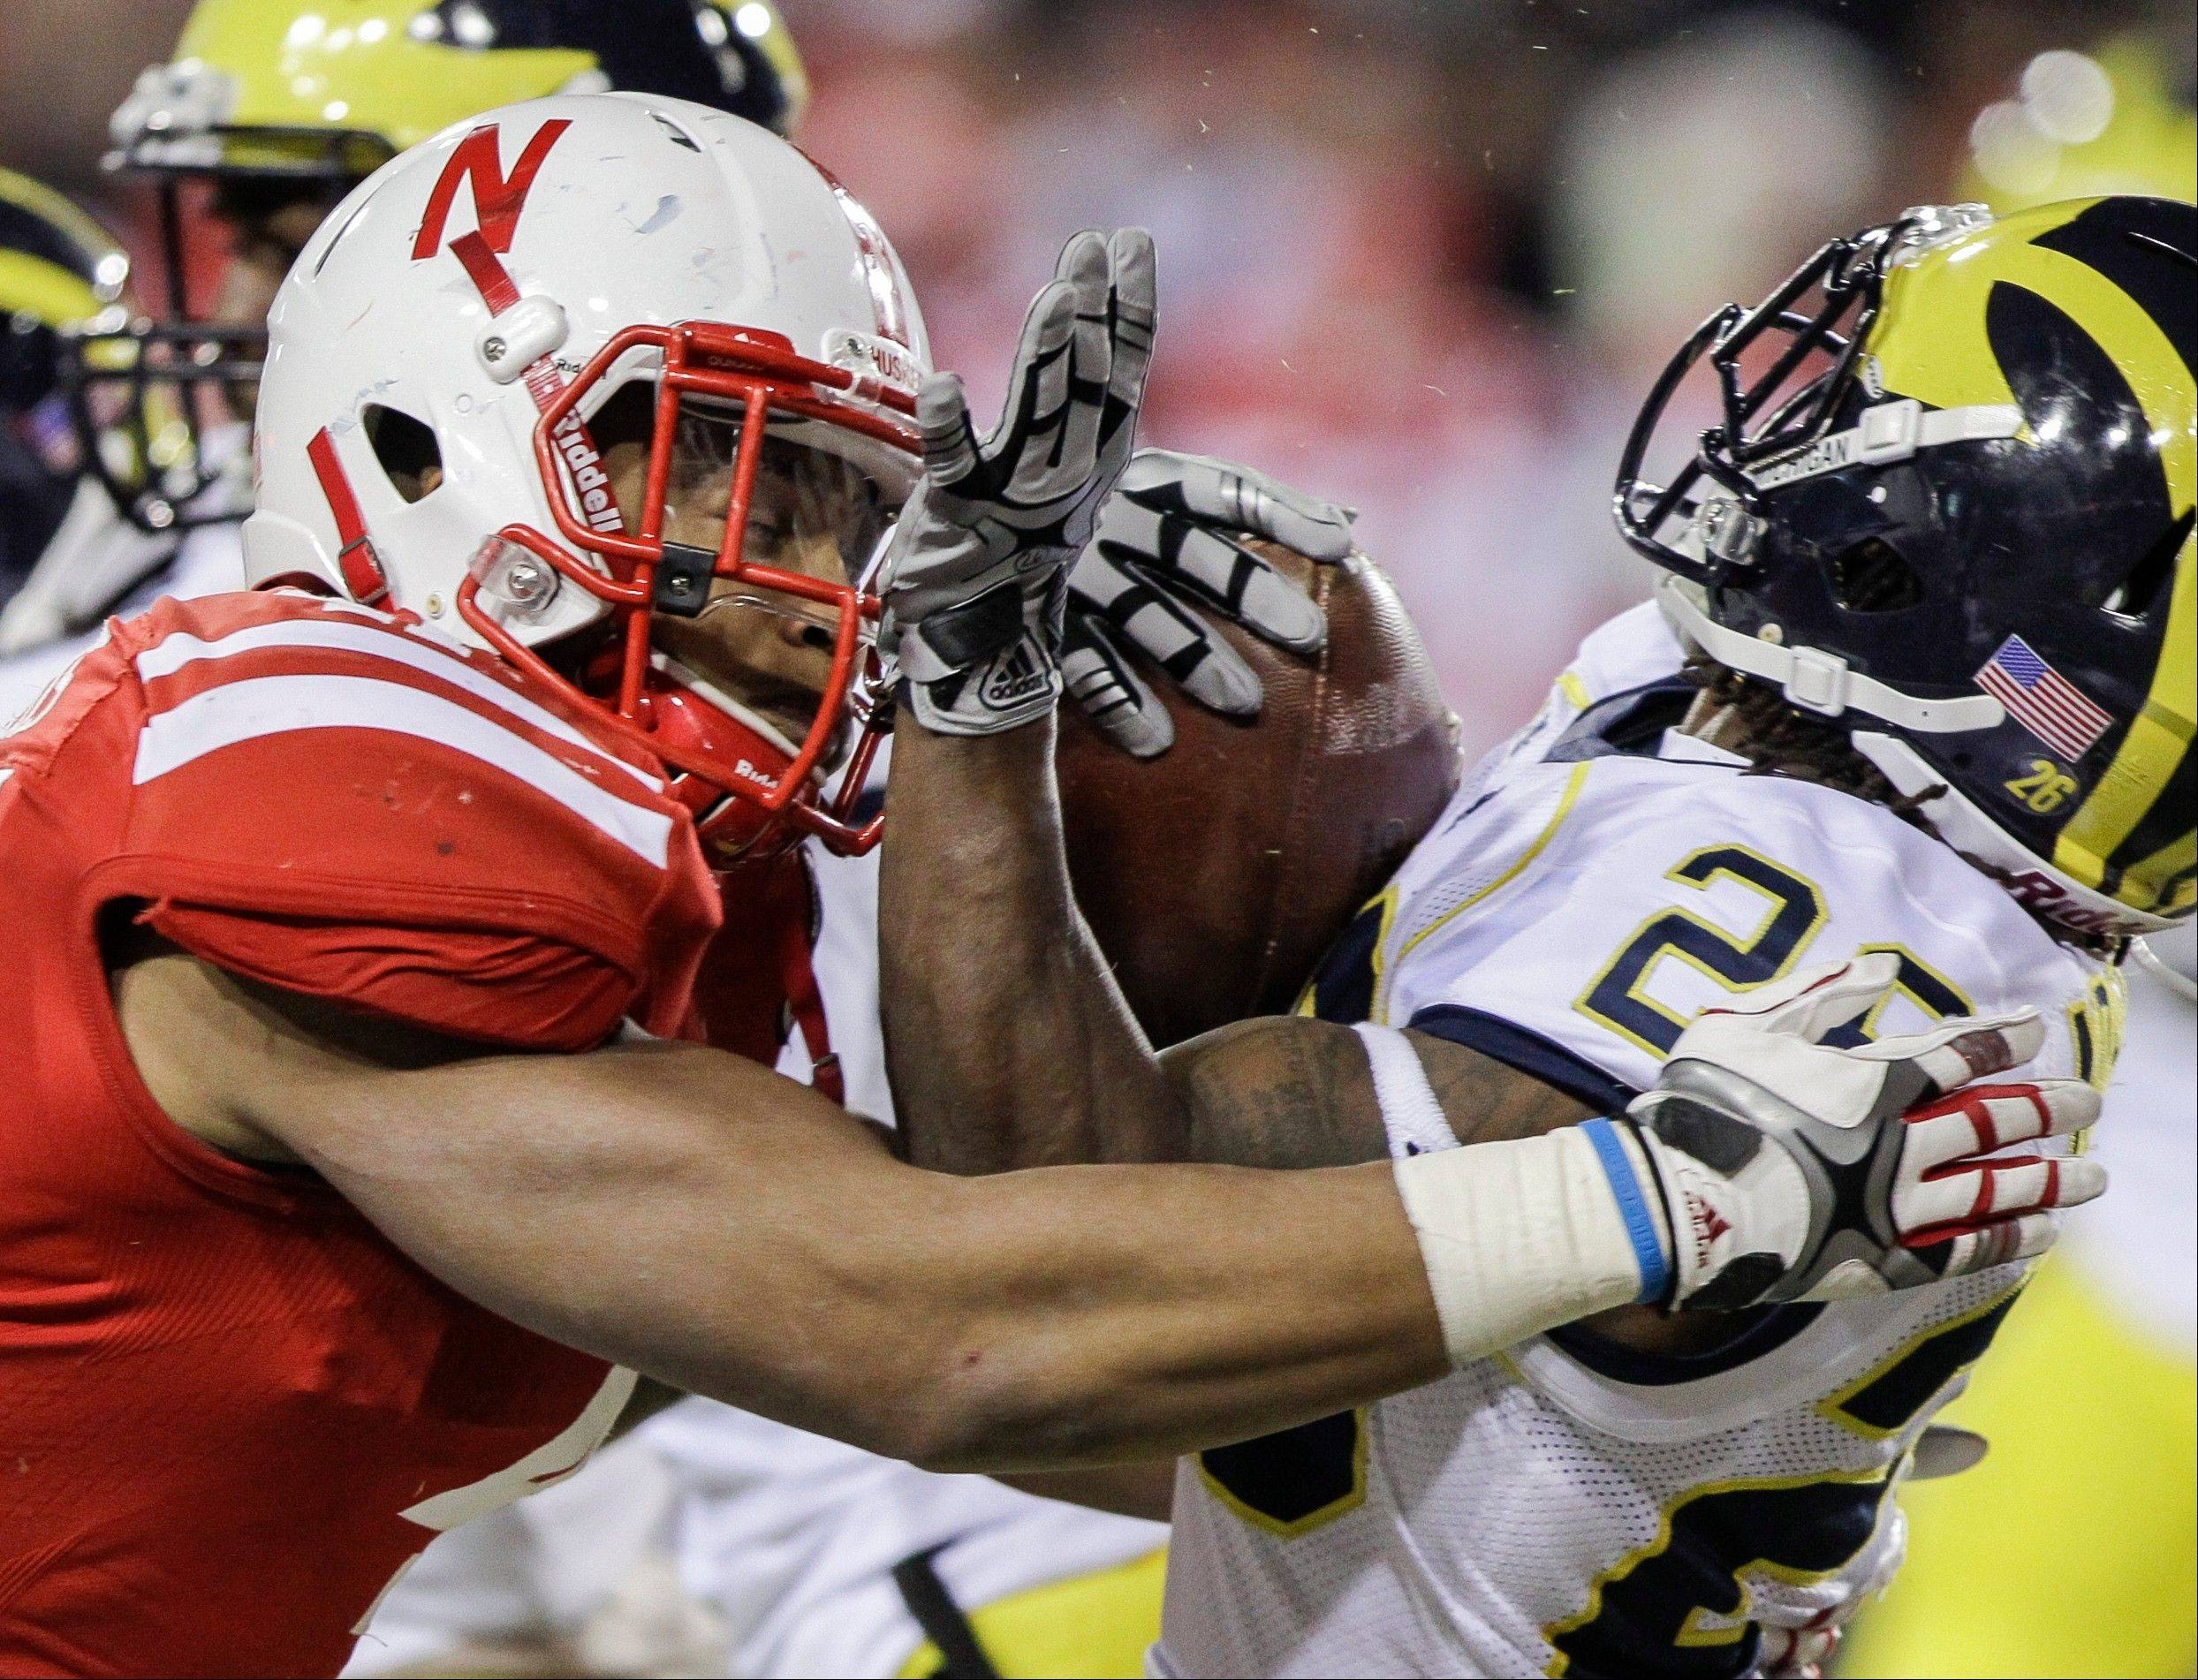 Michigan's Kenny Demens, right, is tackled by Nebraska's David Santos in the second half of an NCAA college football game in Lincoln, Neb., Saturday.